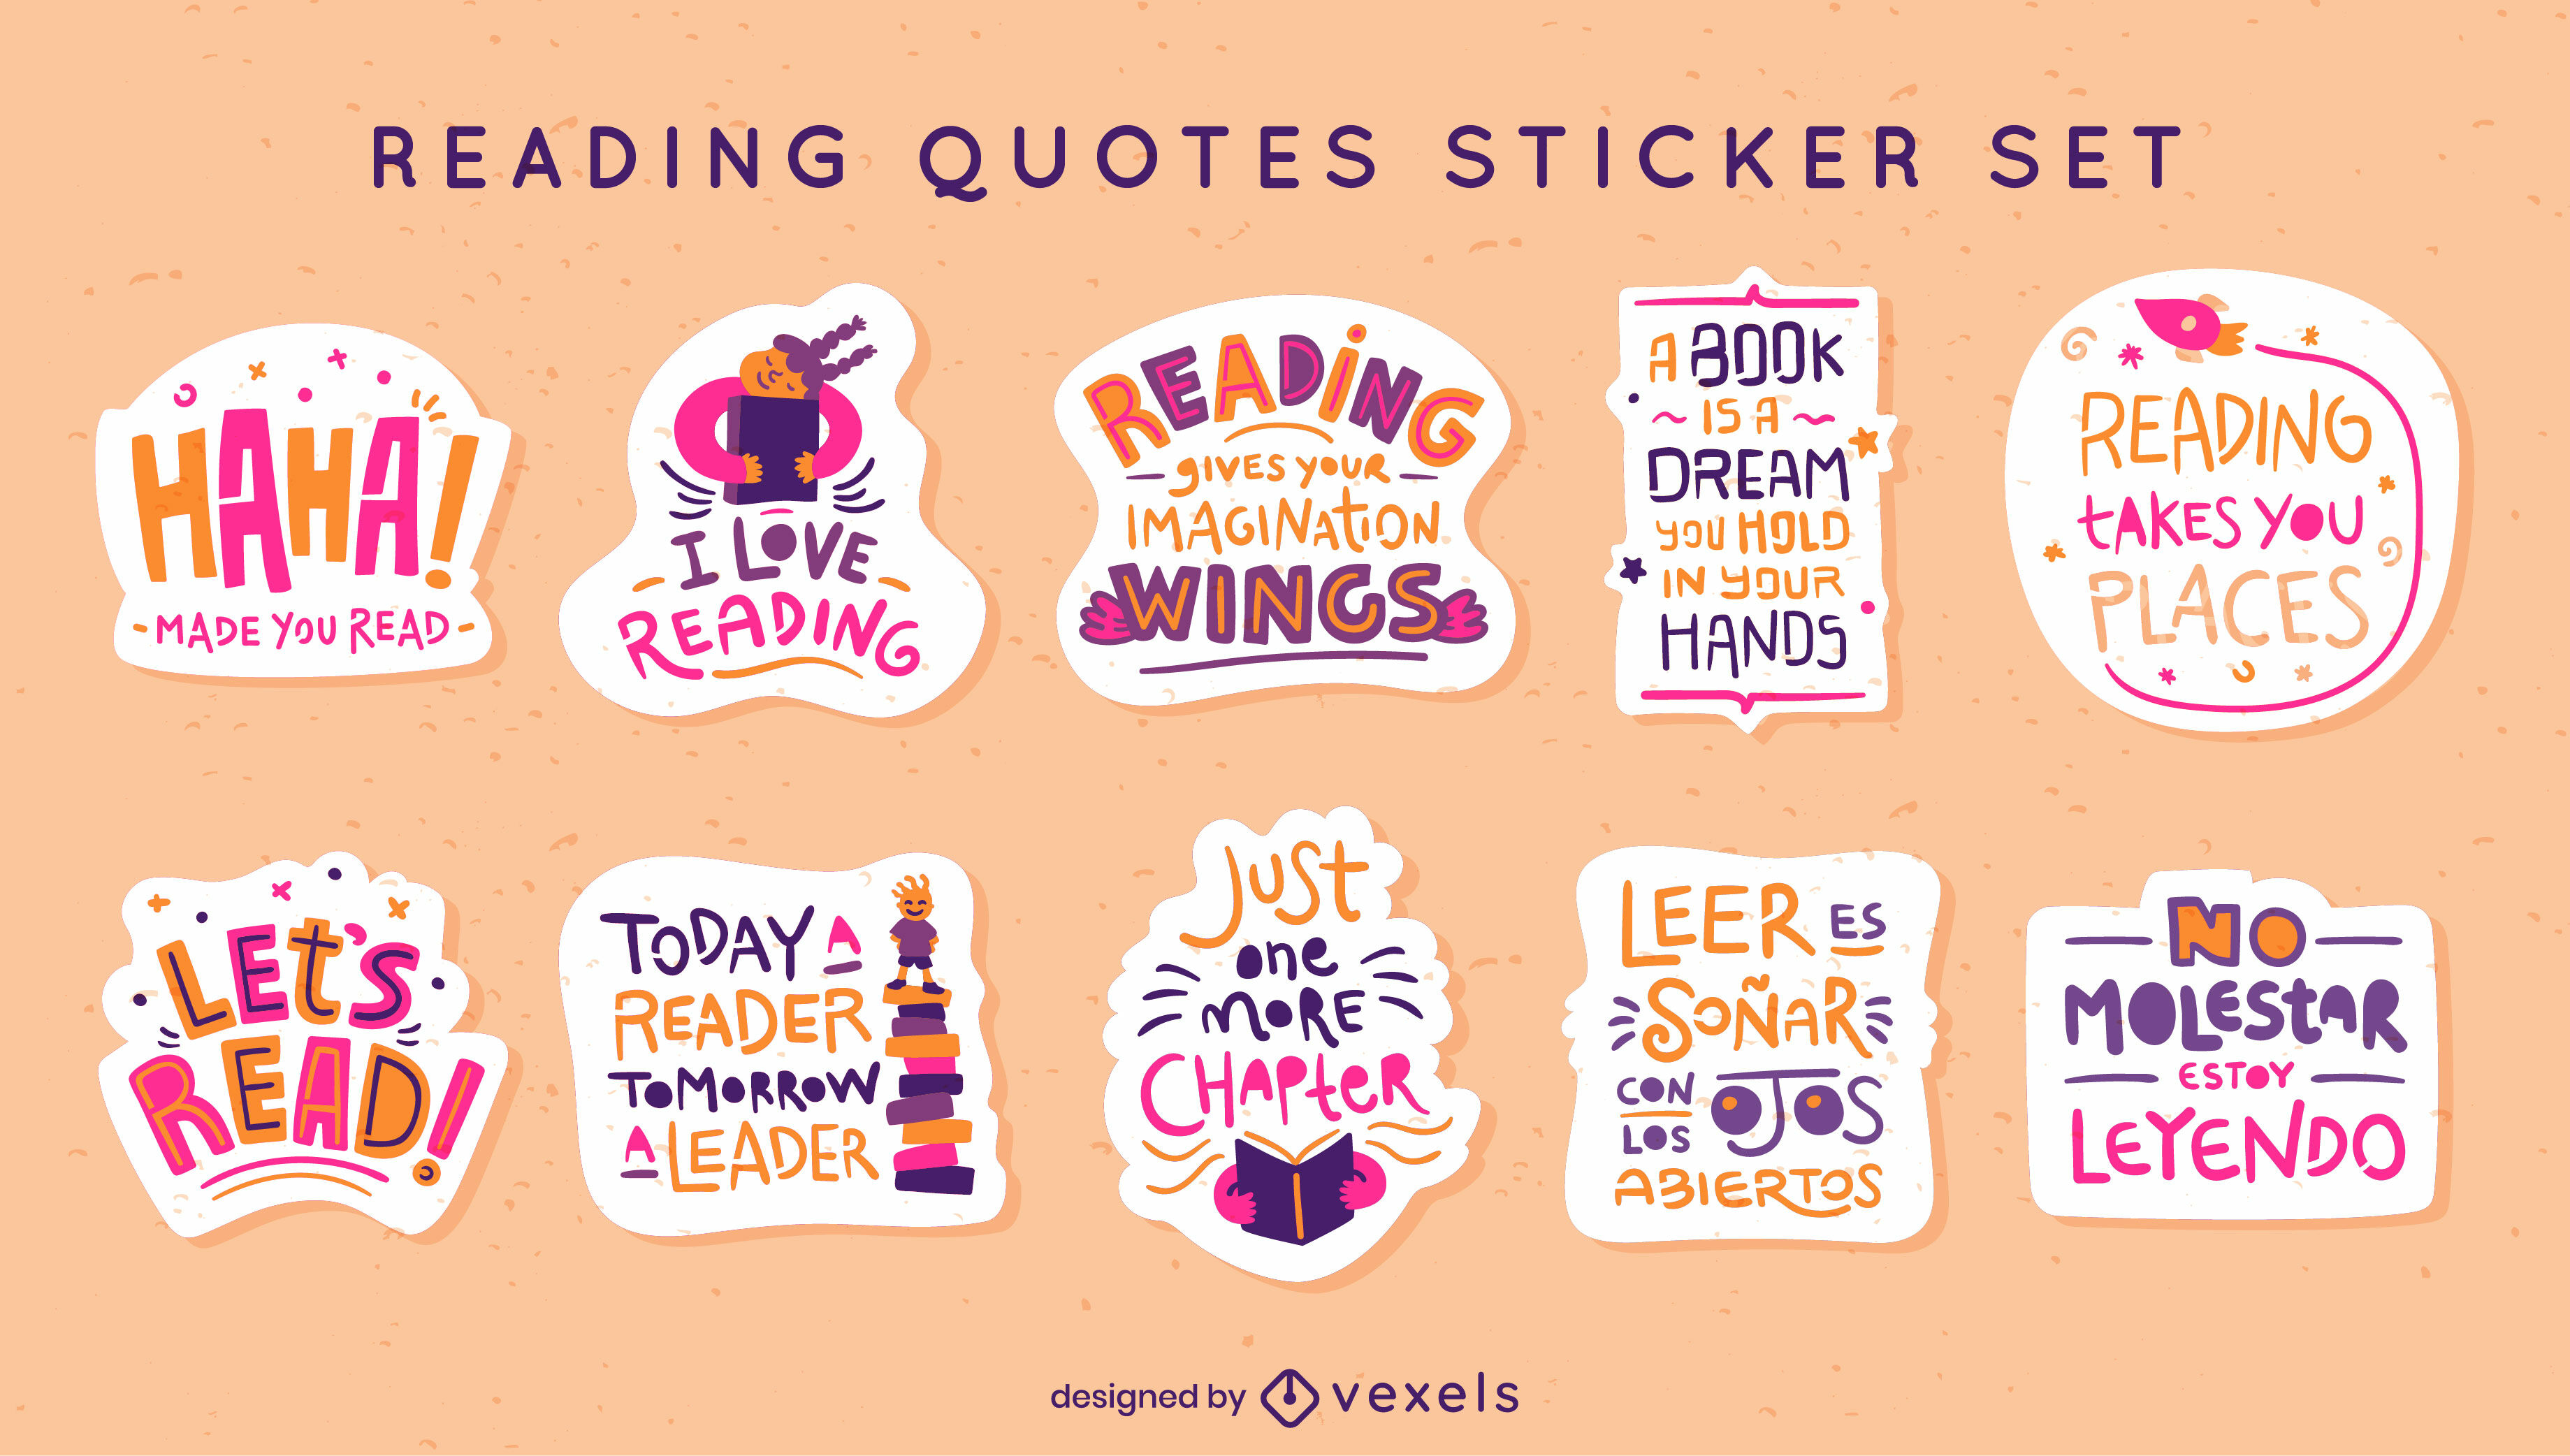 Lettering set of reading stickers